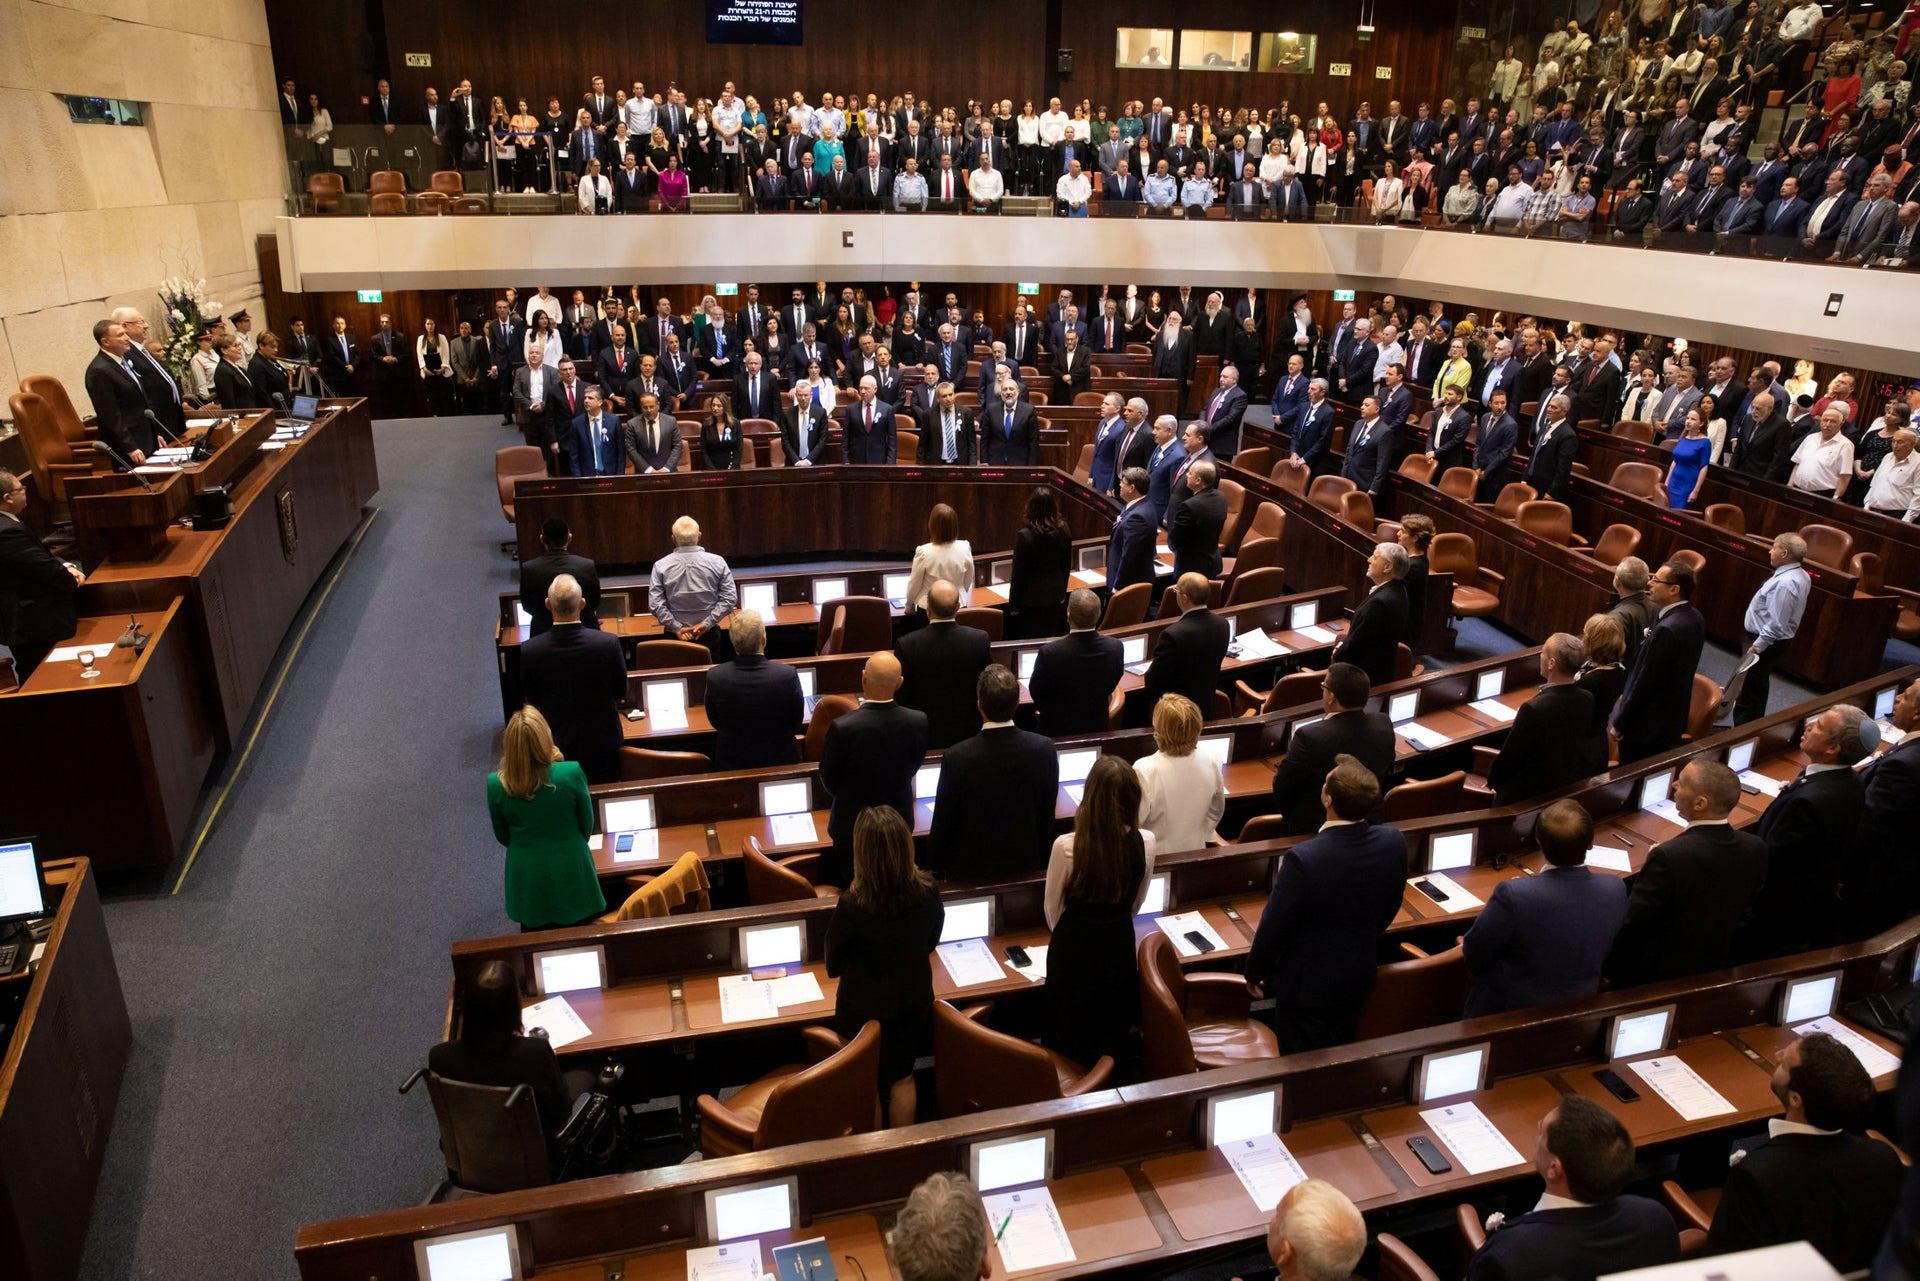 The knesset chamber. The plan is to go up from 120 to 140 members of knesset.